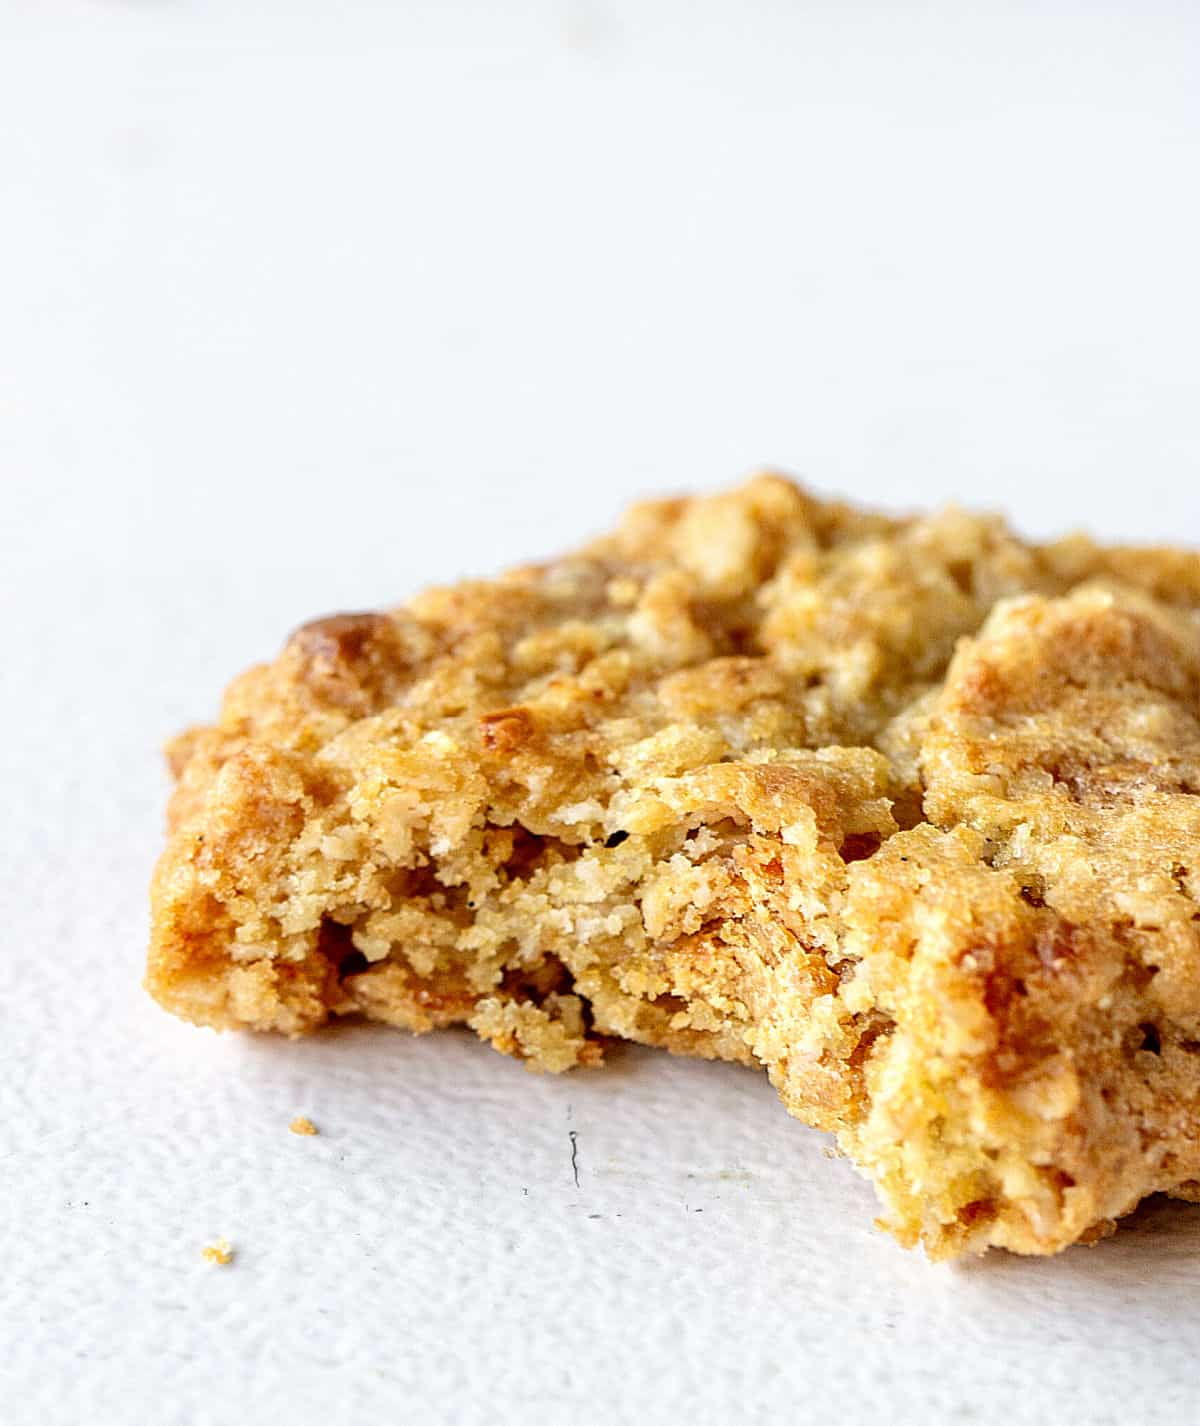 Single bitten oatmeal cookie on a white surface